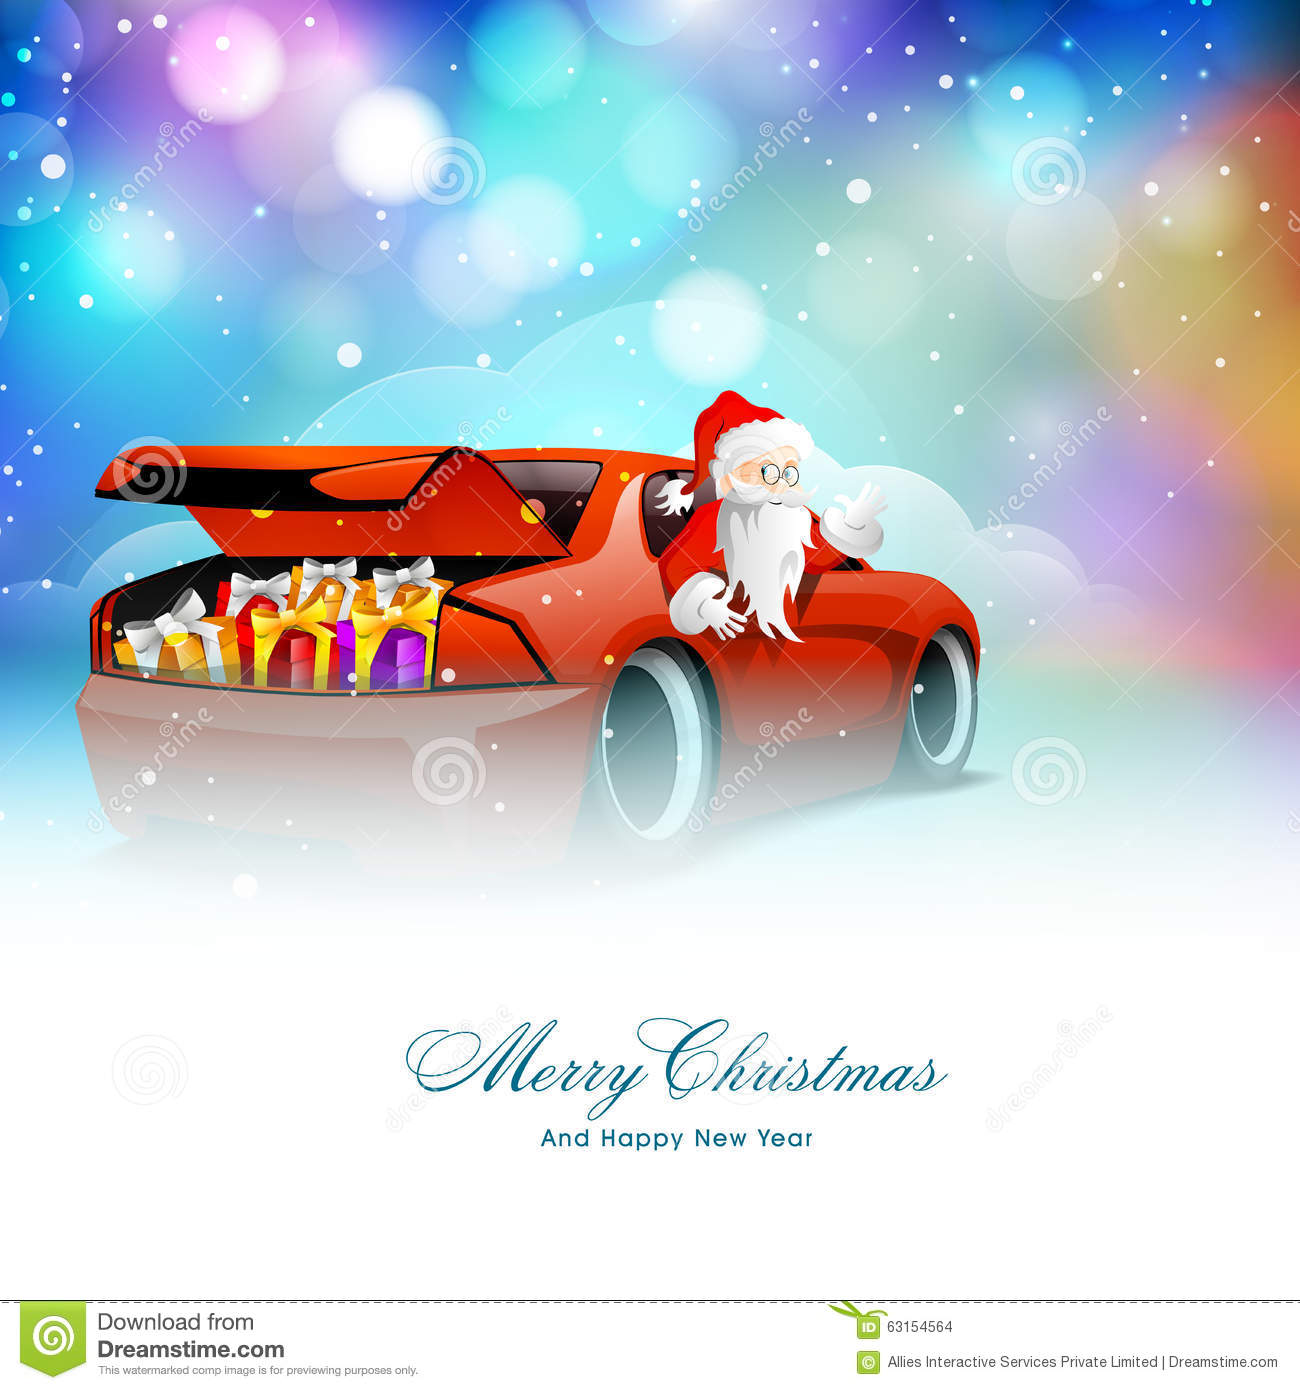 Santa Claus In Car For Christmas And New Year. Stock Illustration ...